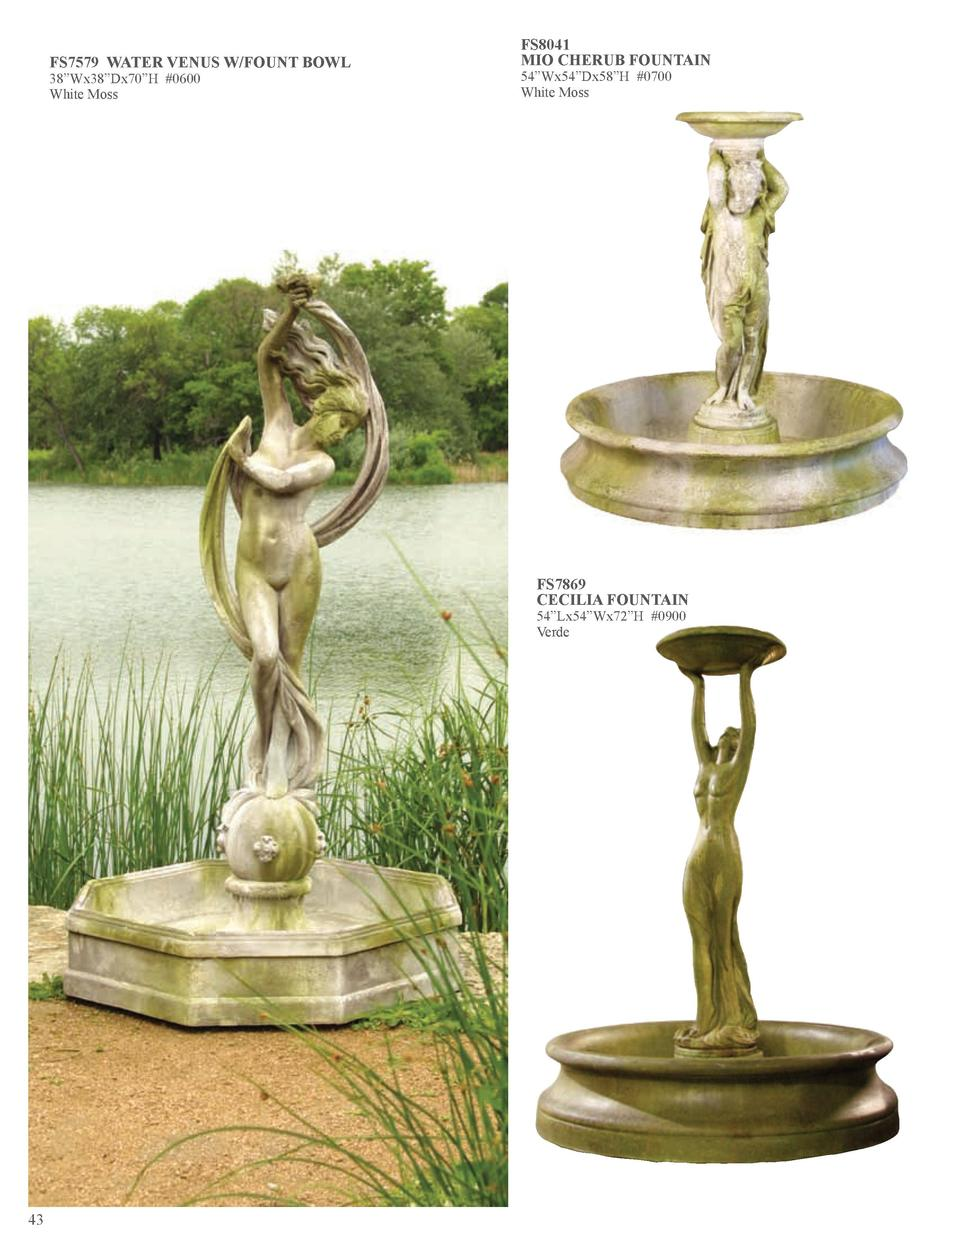 FS7579 WATER VENUS W FOUNT BOWL 38   Wx38   Dx70   H  0600 White Moss  FS8041 MIO CHERUB FOUNTAIN 54   Wx54   Dx58   H  07...